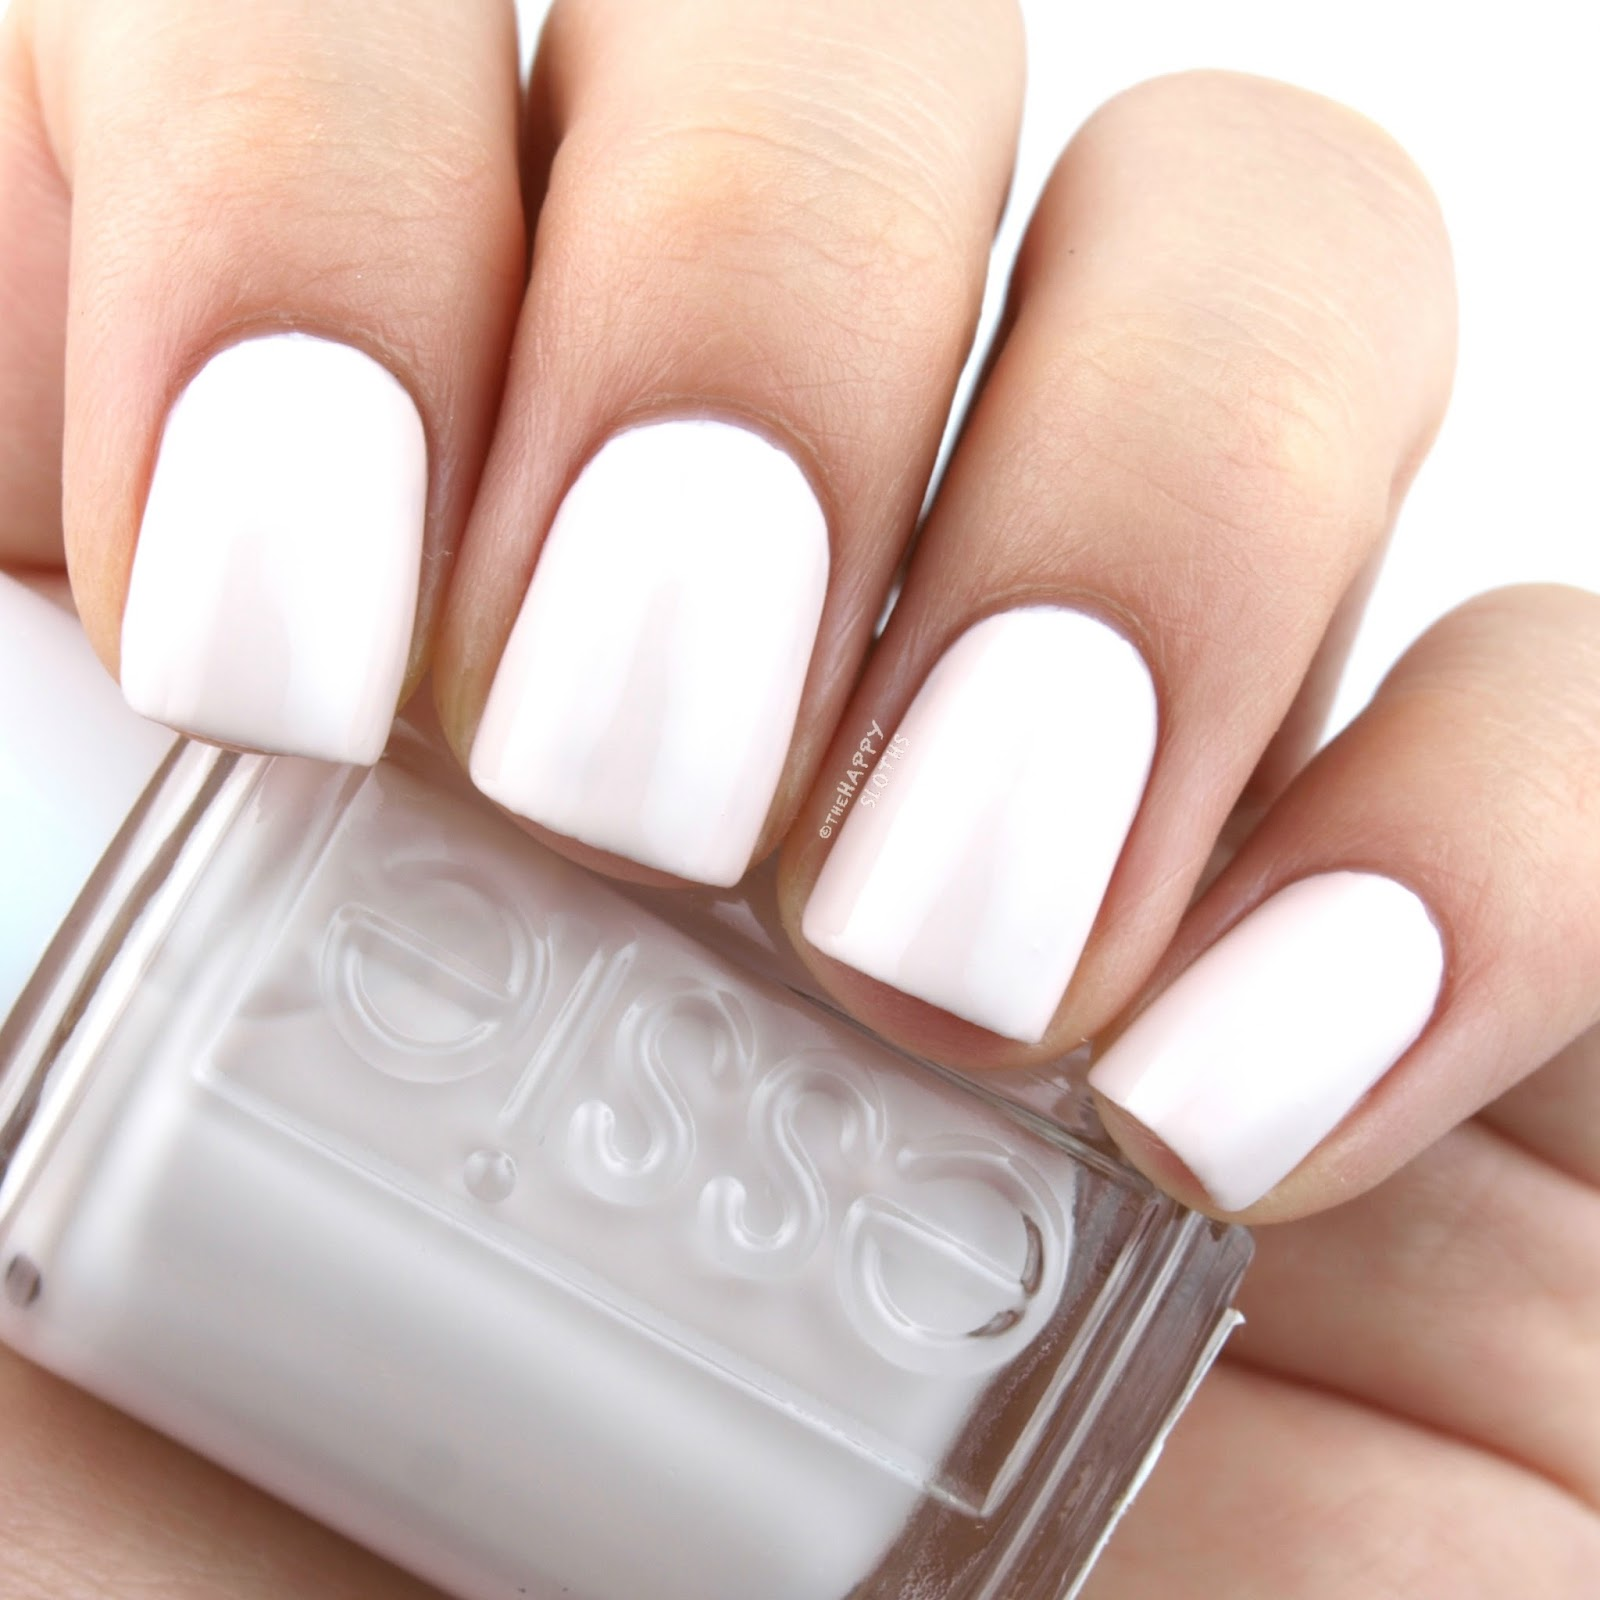 Bordeaux By Essie Clic Polish Nailpolishpursuit Com